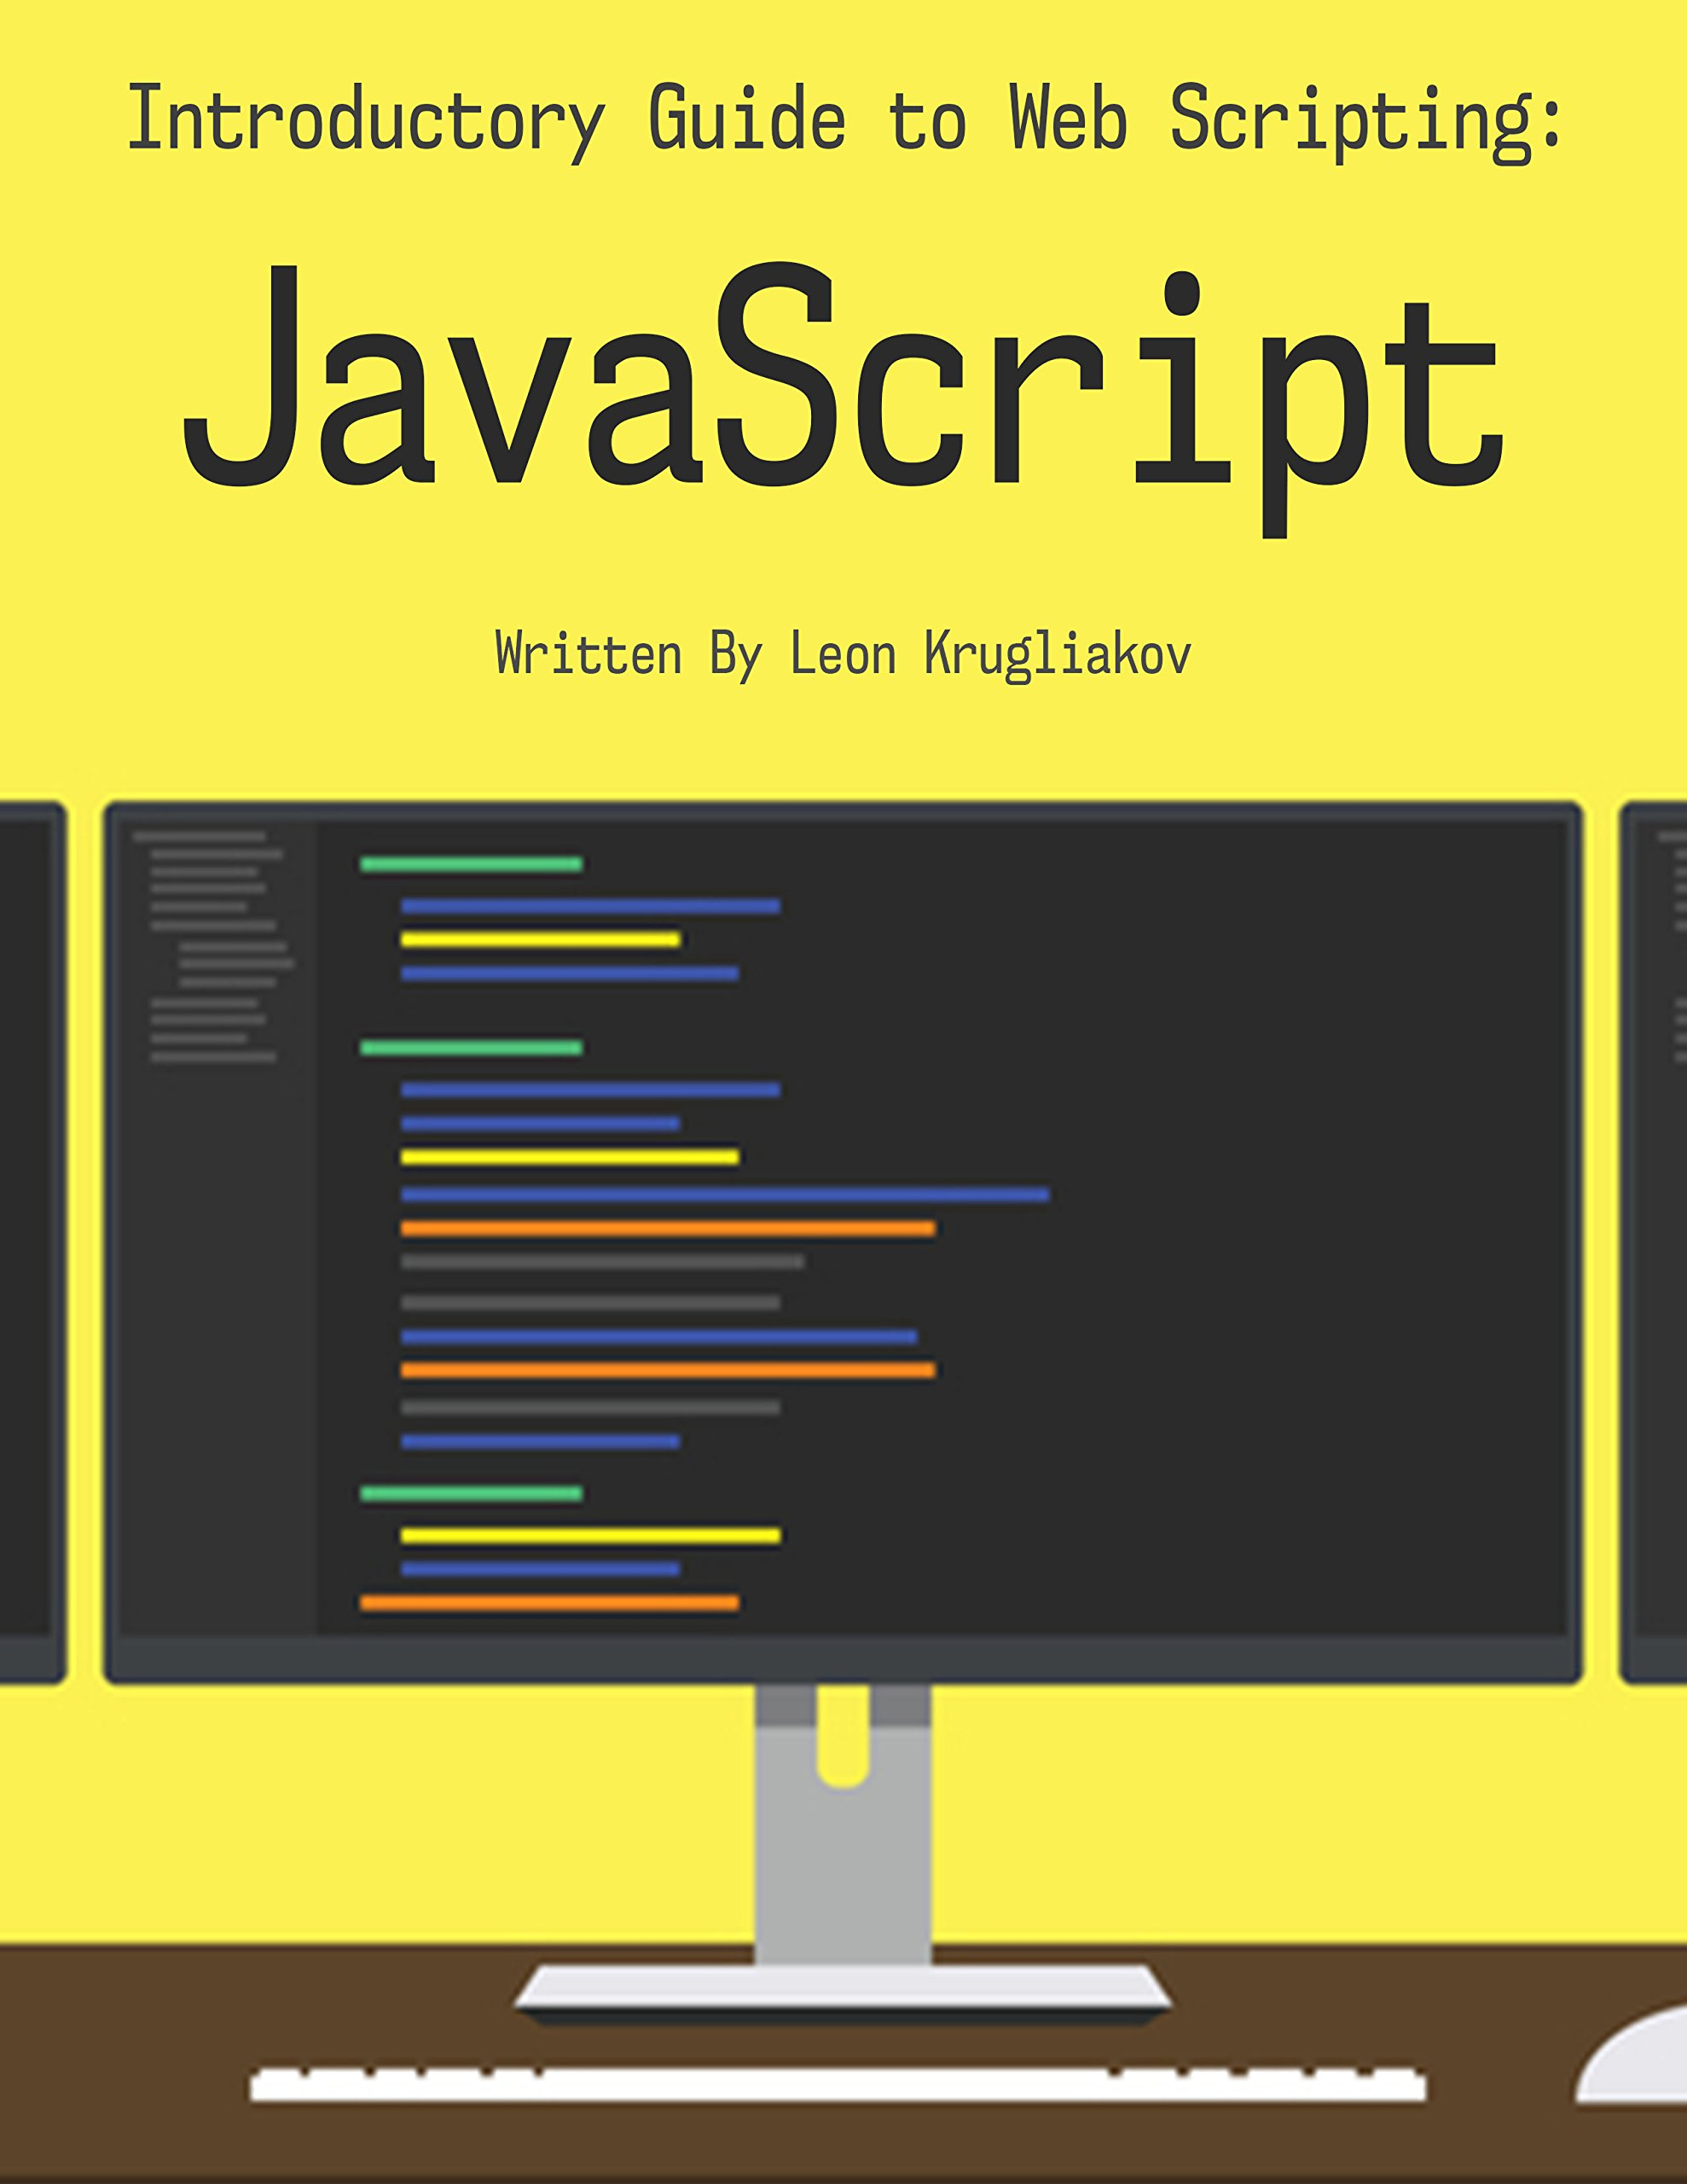 Introductory Guide to Web Scripting: JavaScript: The best guide for web design and development for dummies and beginners